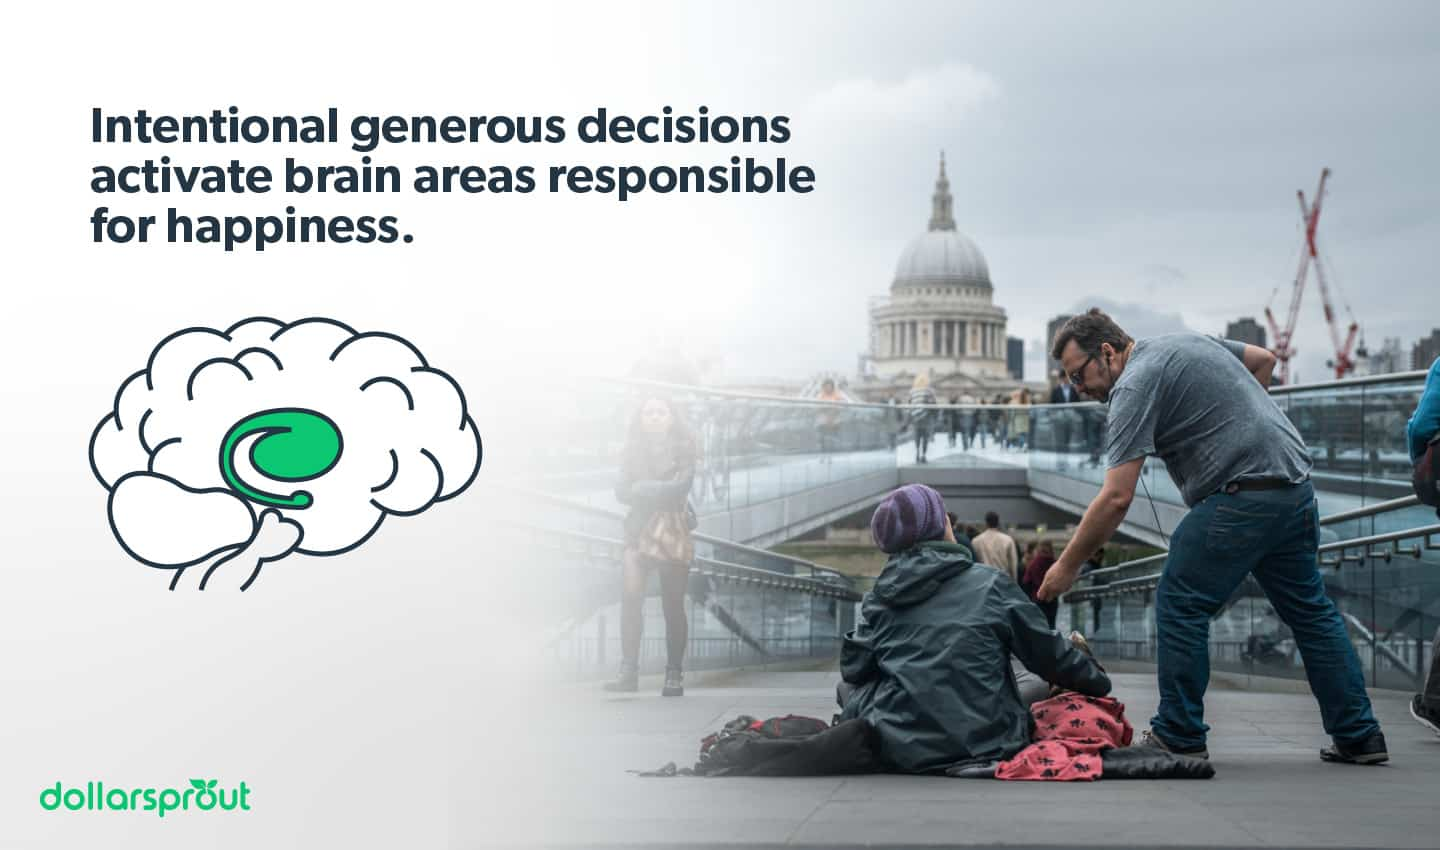 generosity activates areas in the brain responsible for happiness